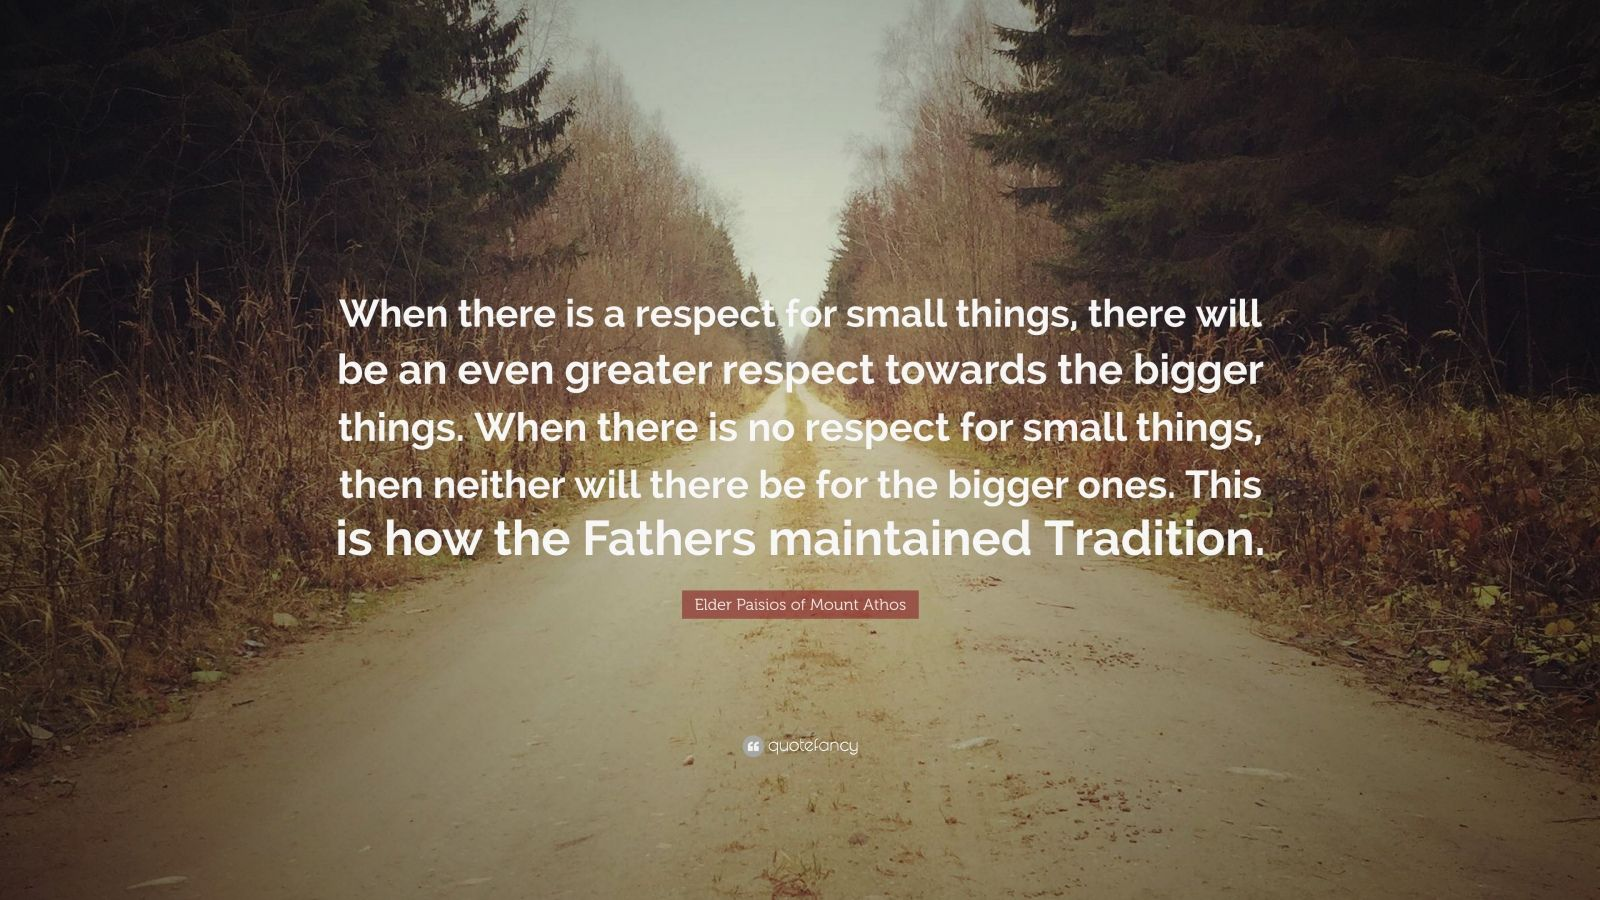 """Elder Paisios of Mount Athos Quote: """"When there is a respect for small things, there will be an even greater respect towards the bigger things. When there is no respect for small things, then neither will there be for the bigger ones. This is how the Fathers maintained Tradition."""""""